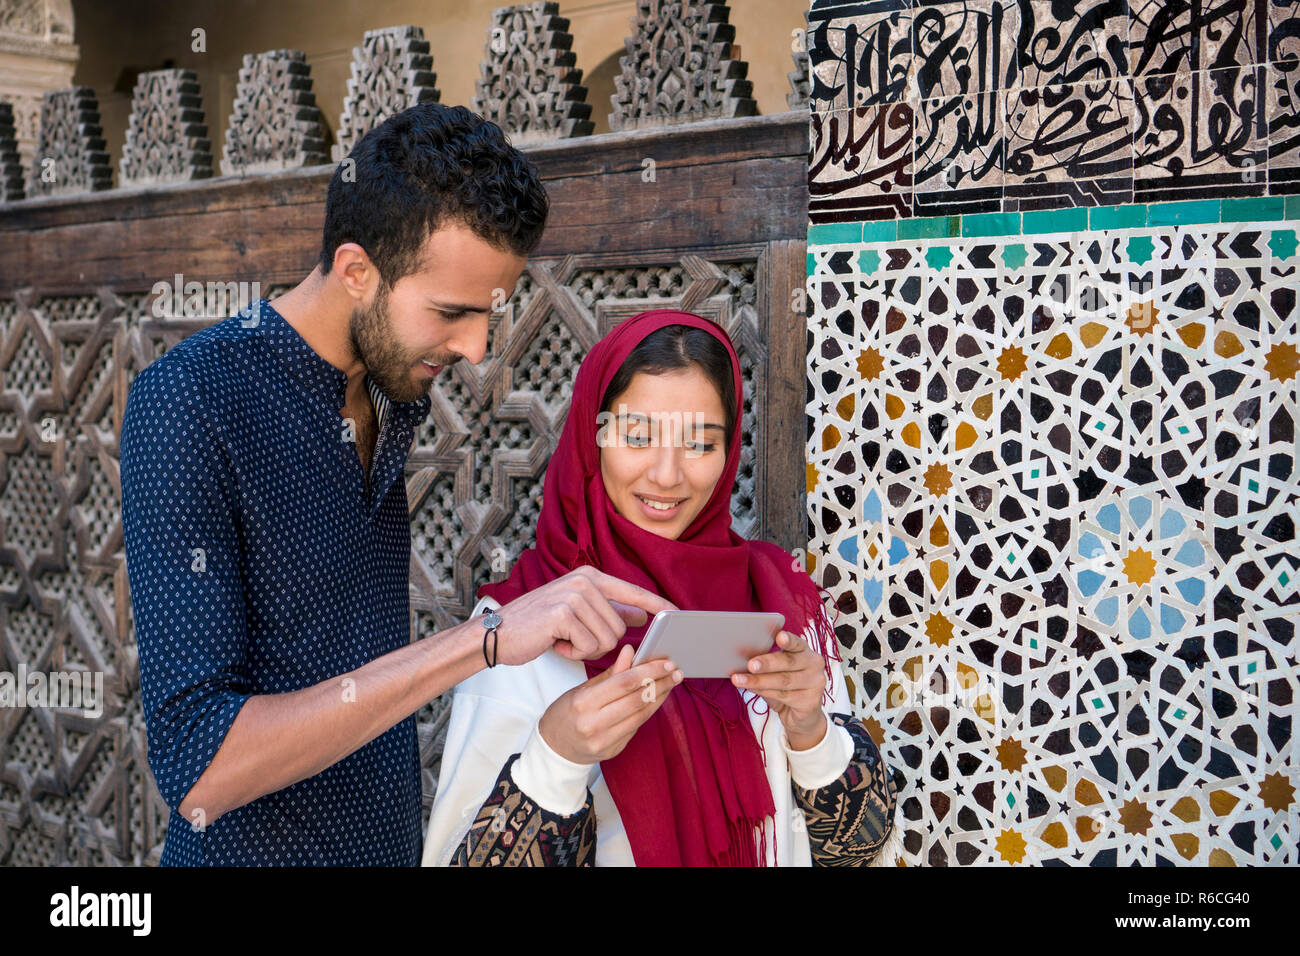 Musulmane Smiling couple looking at cellphone à côté du mur marocain Décoration arabesque Photo Stock